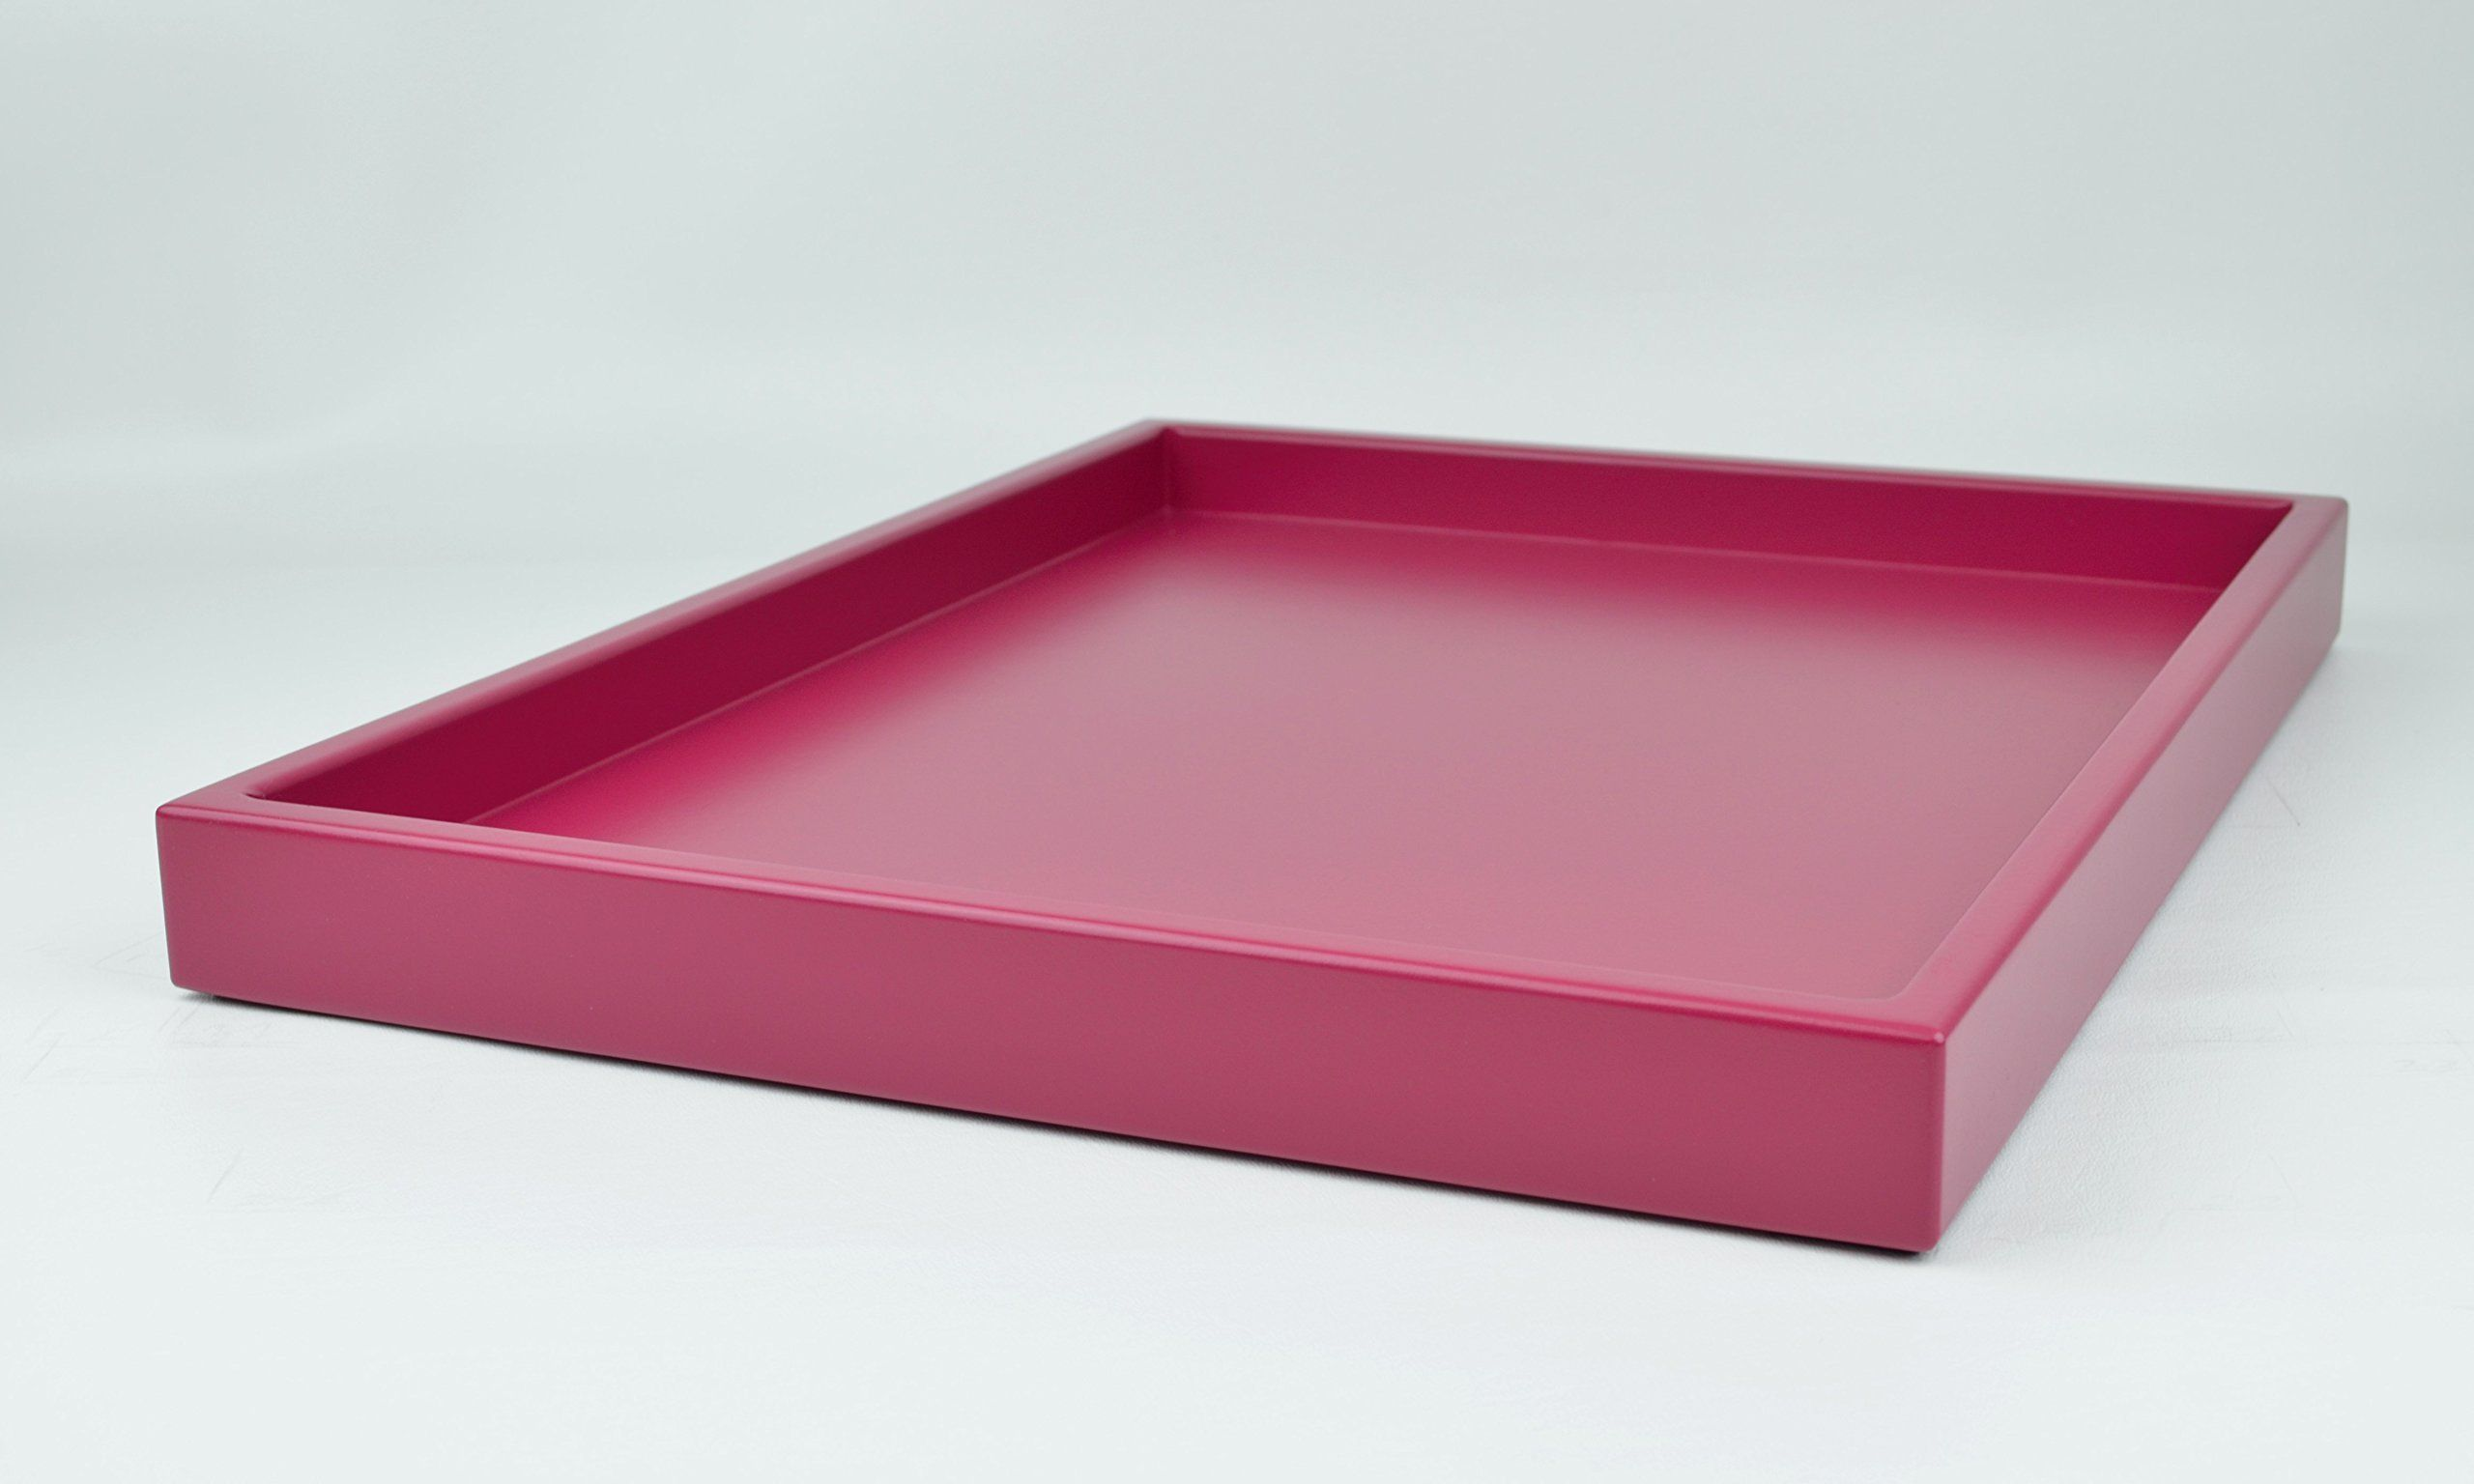 Handmade Tray Decoration Fascinating Decorative Tray Raspberry Pink Matte Or Gloss Lacquera 2018